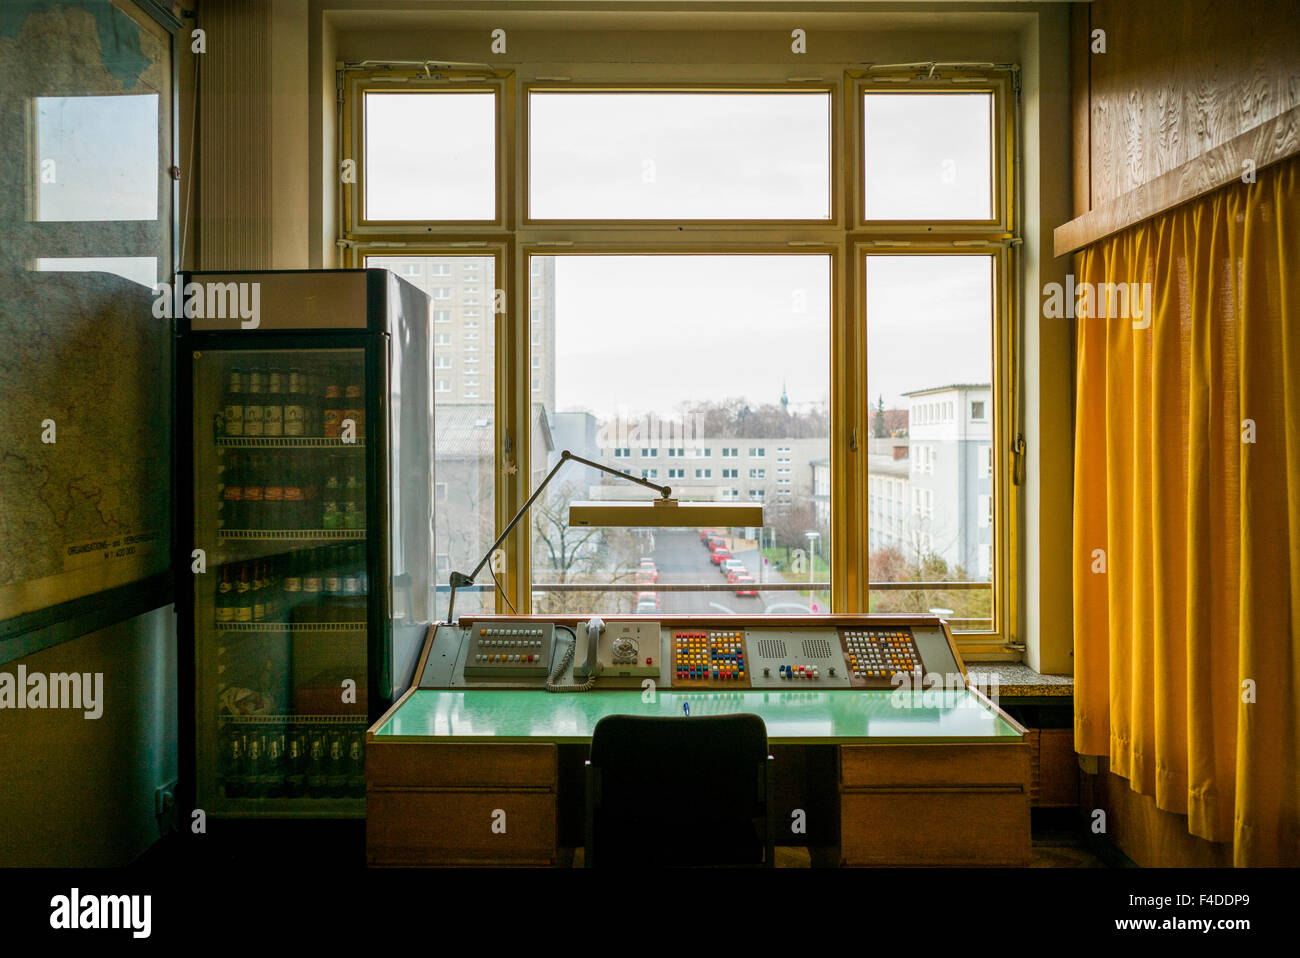 Germany, Berlin, Stasi Museum, DDR-era secret police museum in former secret police headquarters, snack bar and Stock Photo